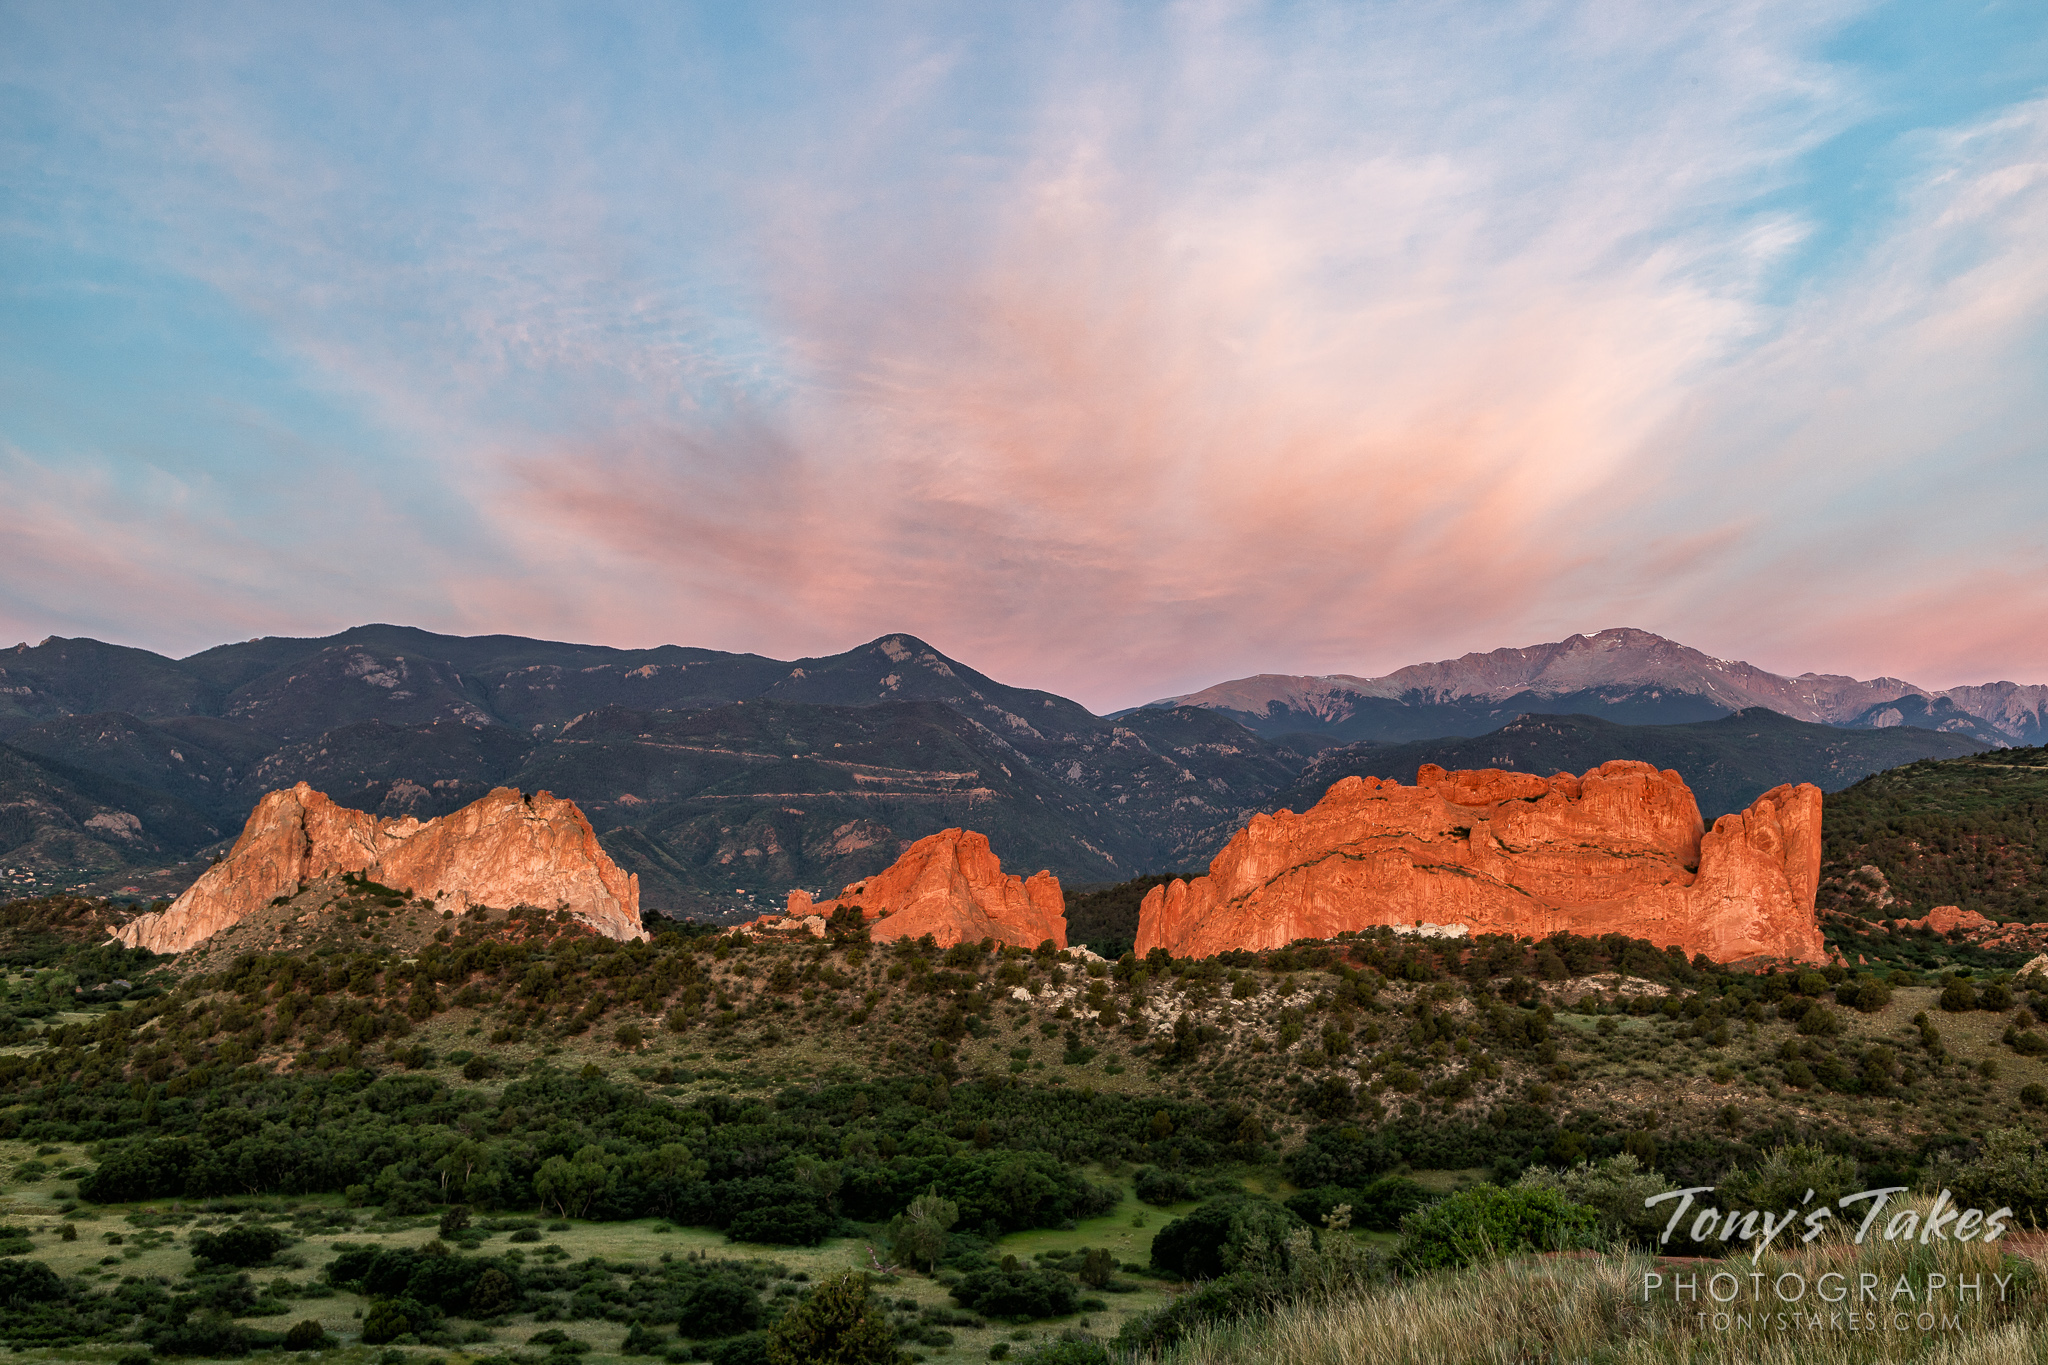 The Garden of the Gods and Pikes Peak are illuminated by the rising sun. (© Tony's Takes)